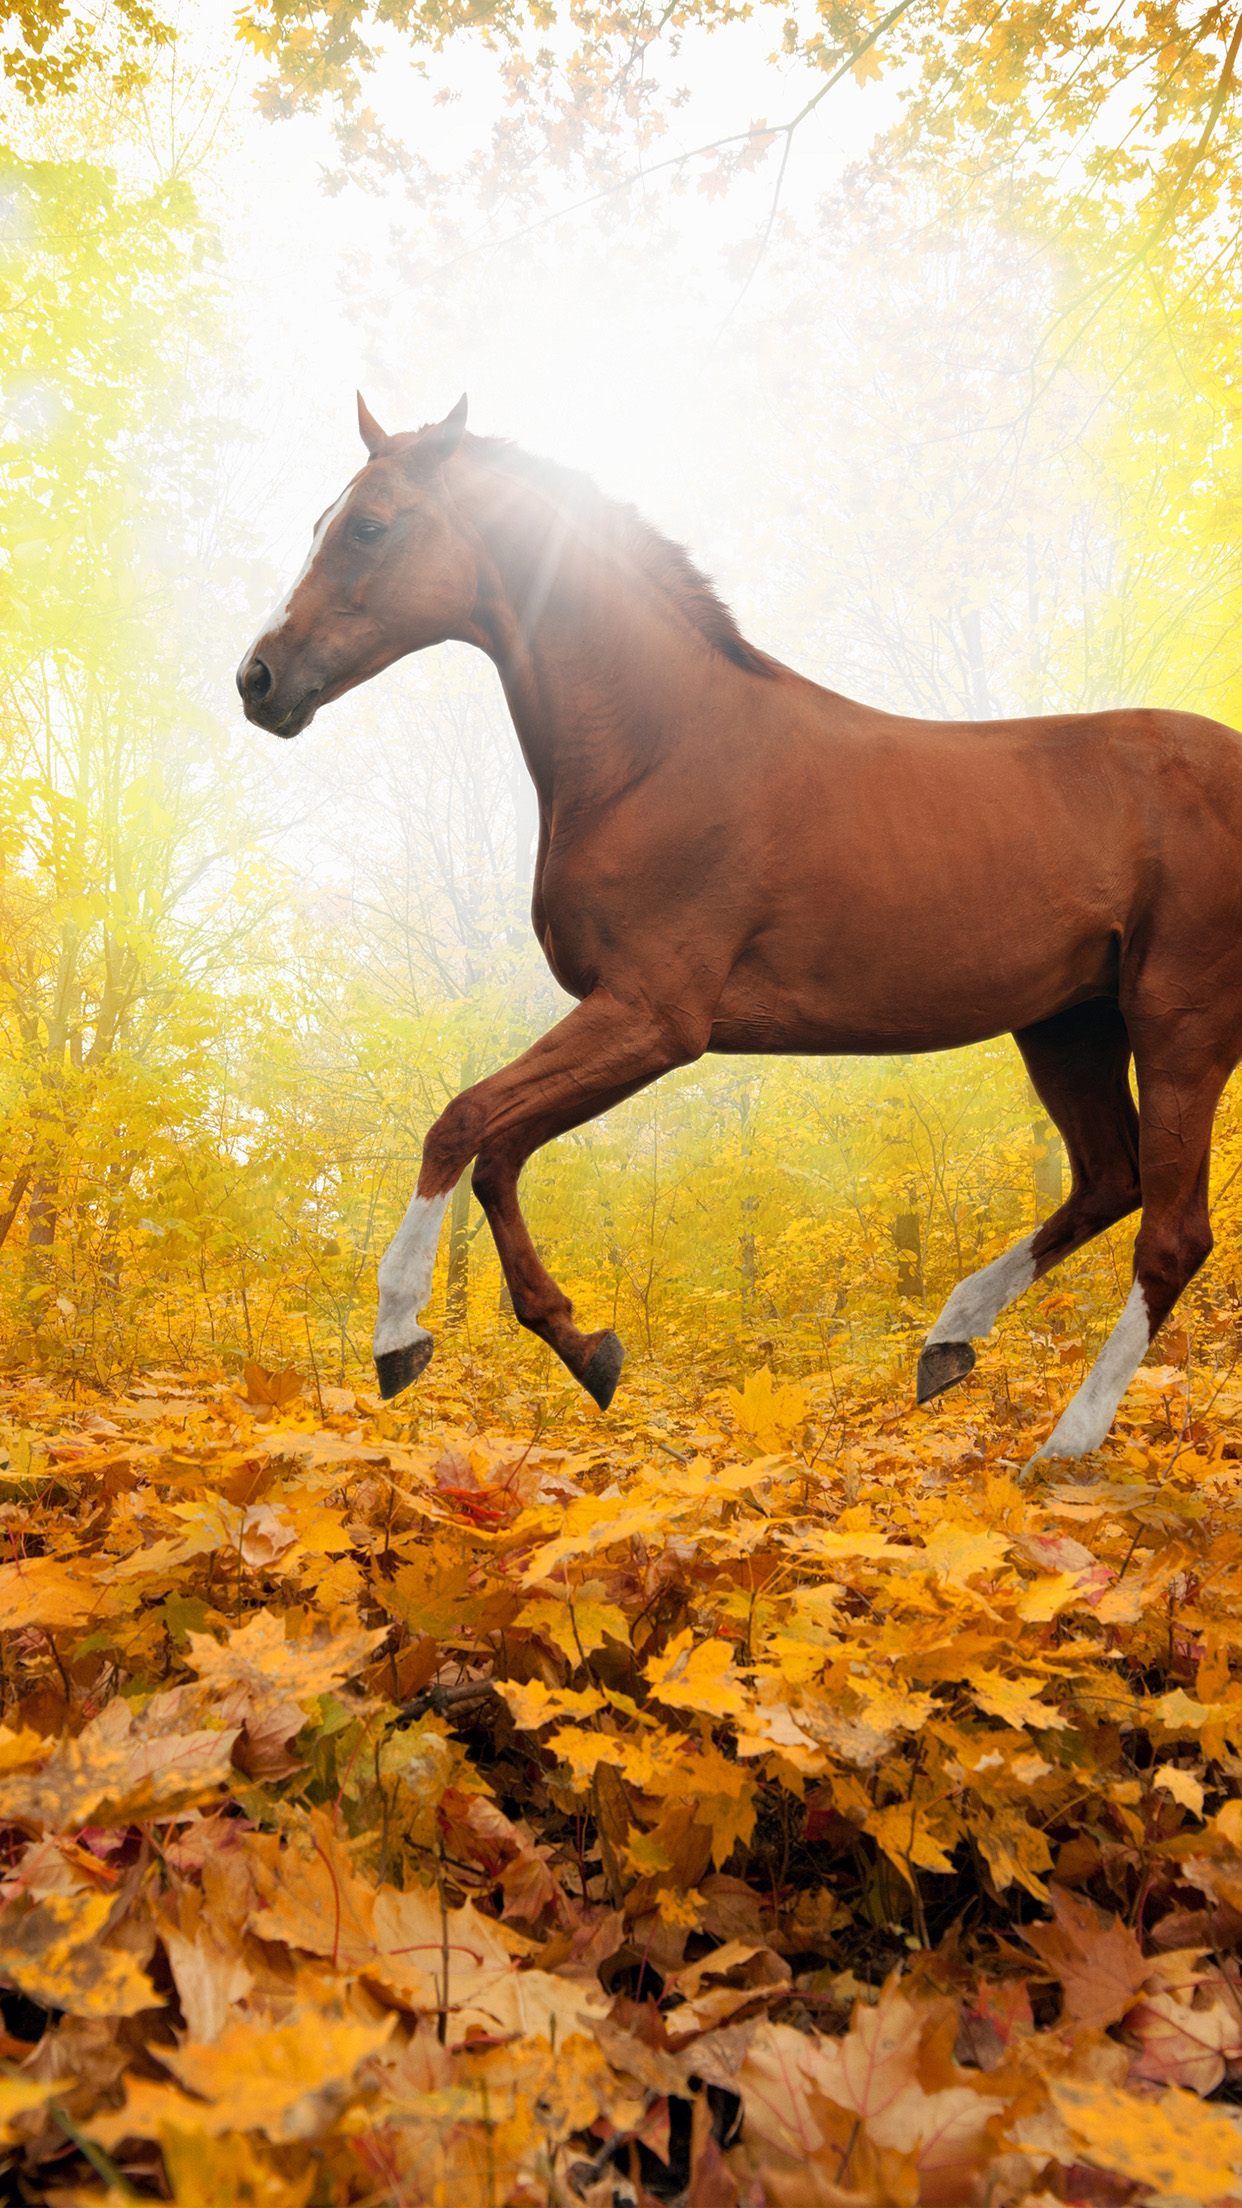 Horse Fall Leaf Mountain Red Wallpaper For Iphone X 8 7